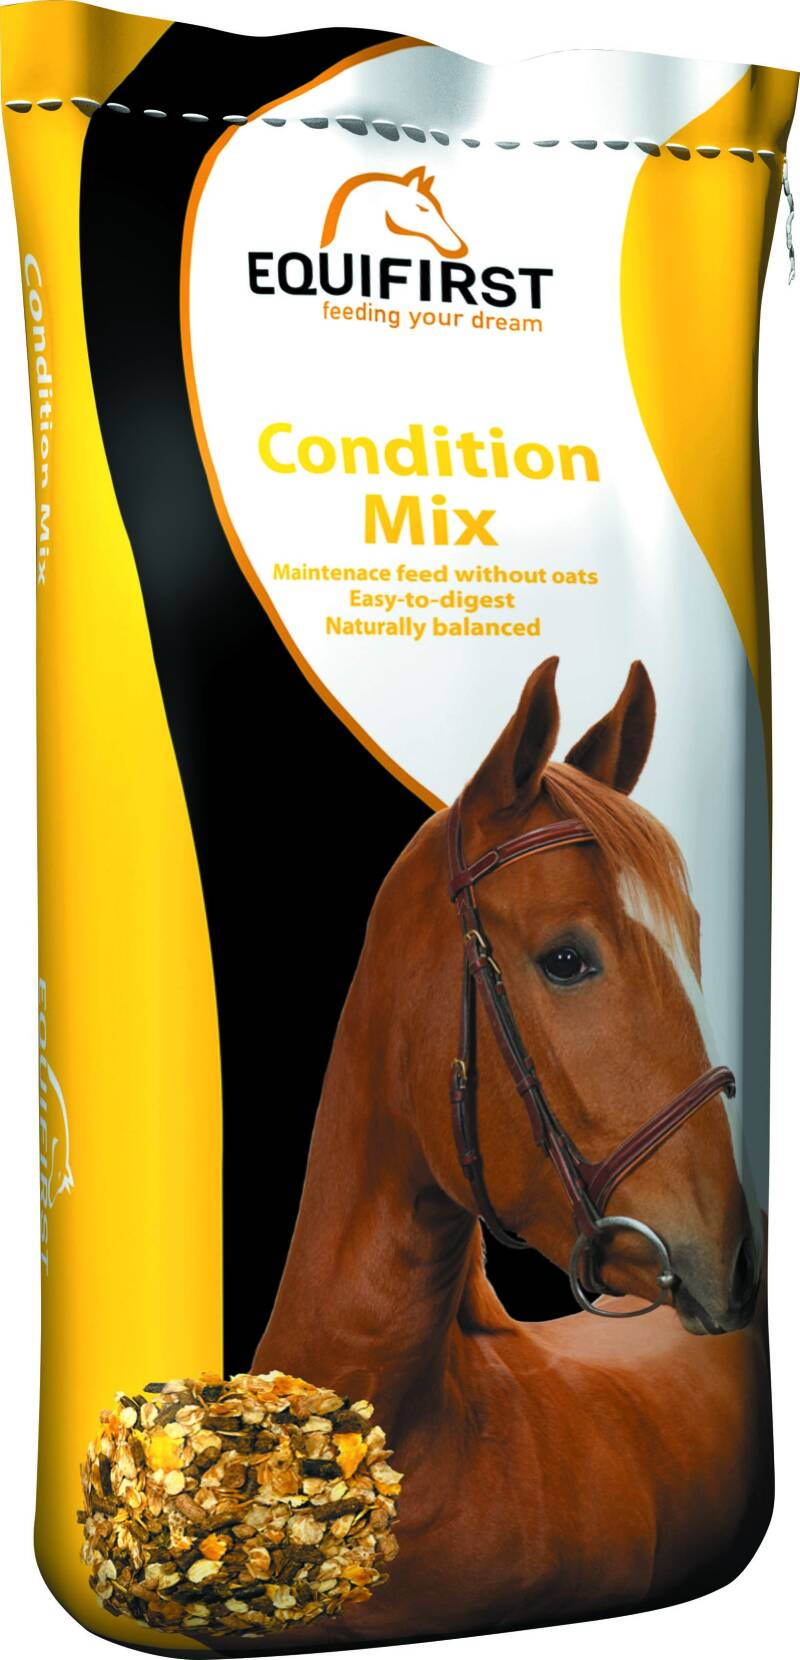 Equifirst Condition Mix